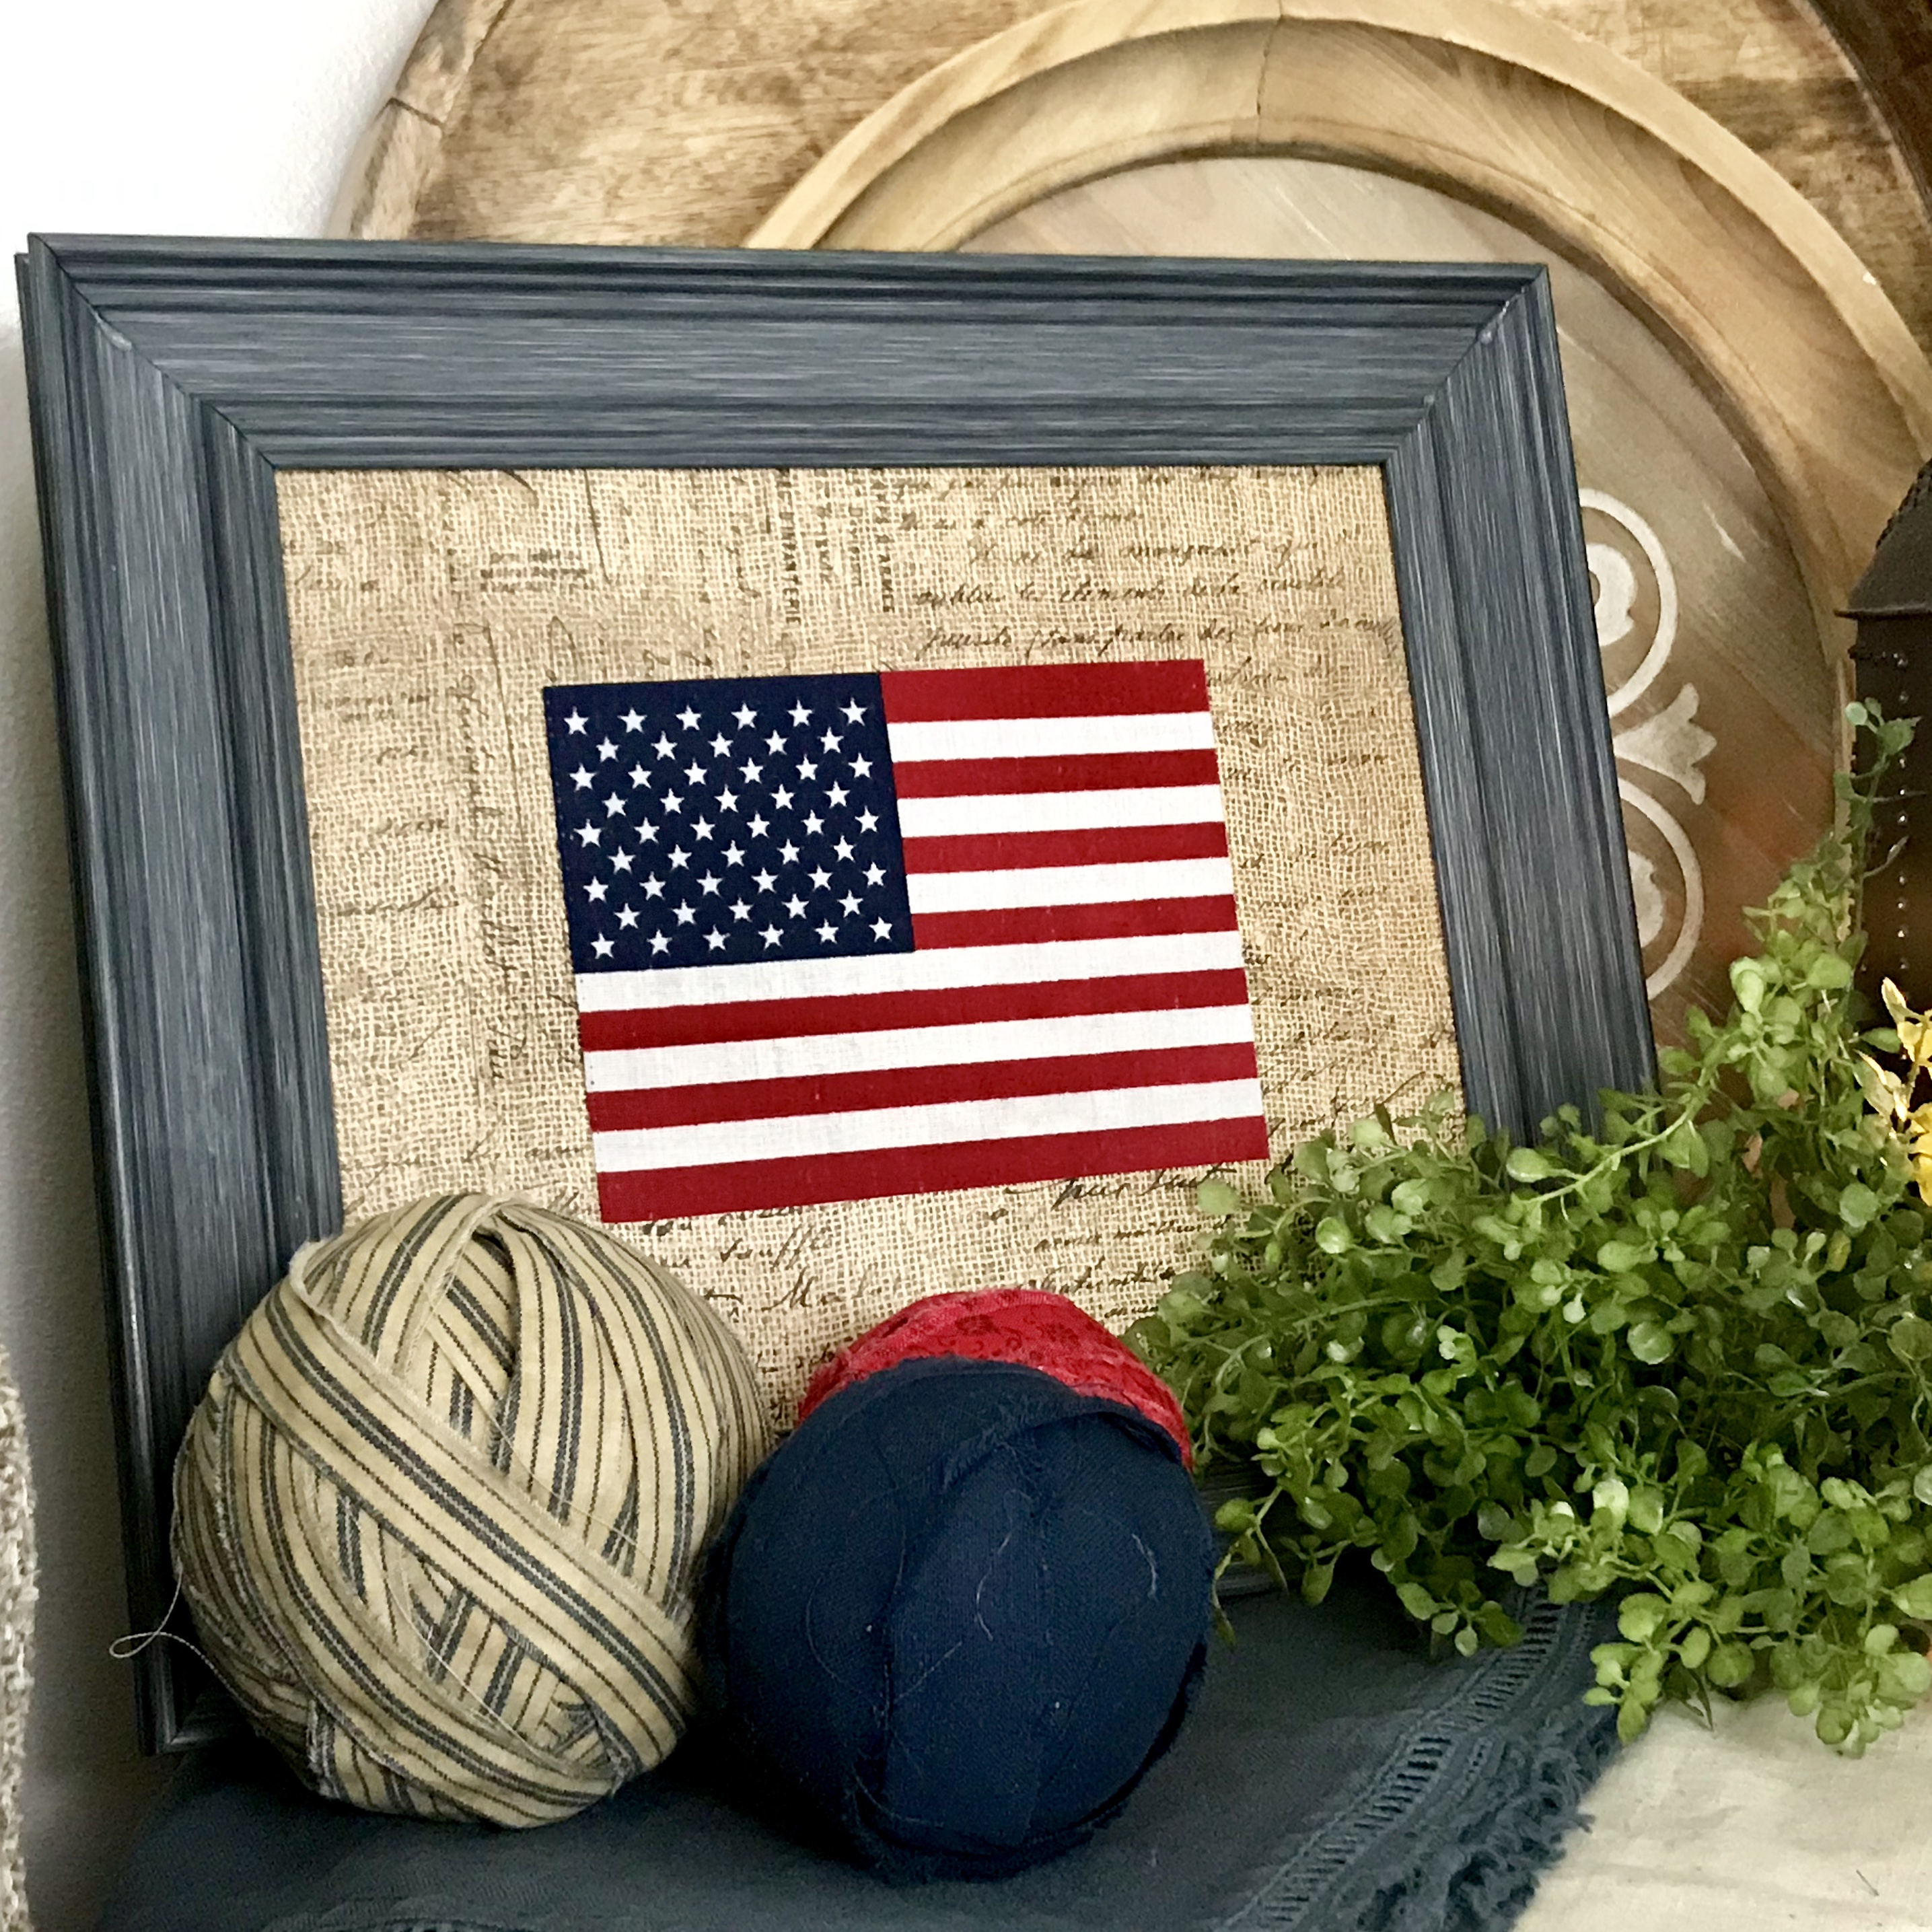 Framed Flag Patriotic Home Decor July 4th USA Patriotic DIY Framed Flag Home Decor Fourth of July USA